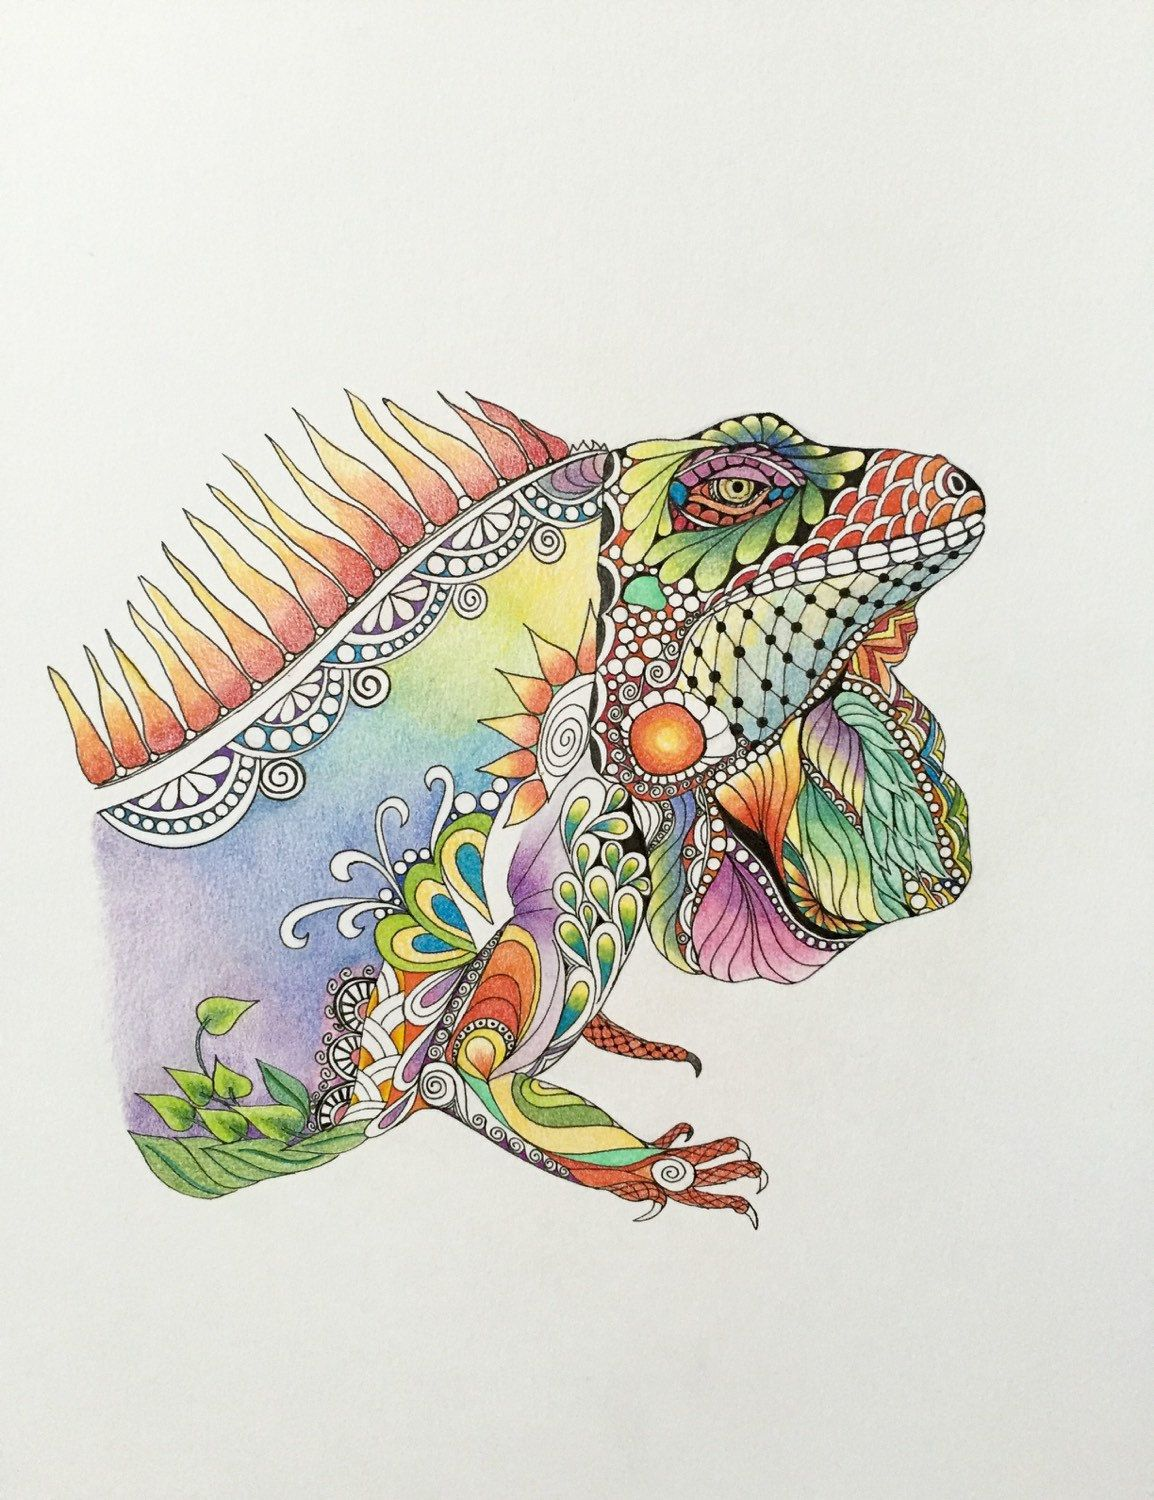 Zentangle Iguana Iguana Art Colored Zentangle Reptile Art Ink Etsy Zentangle Drawings Coloring Book Art Zentangle Art